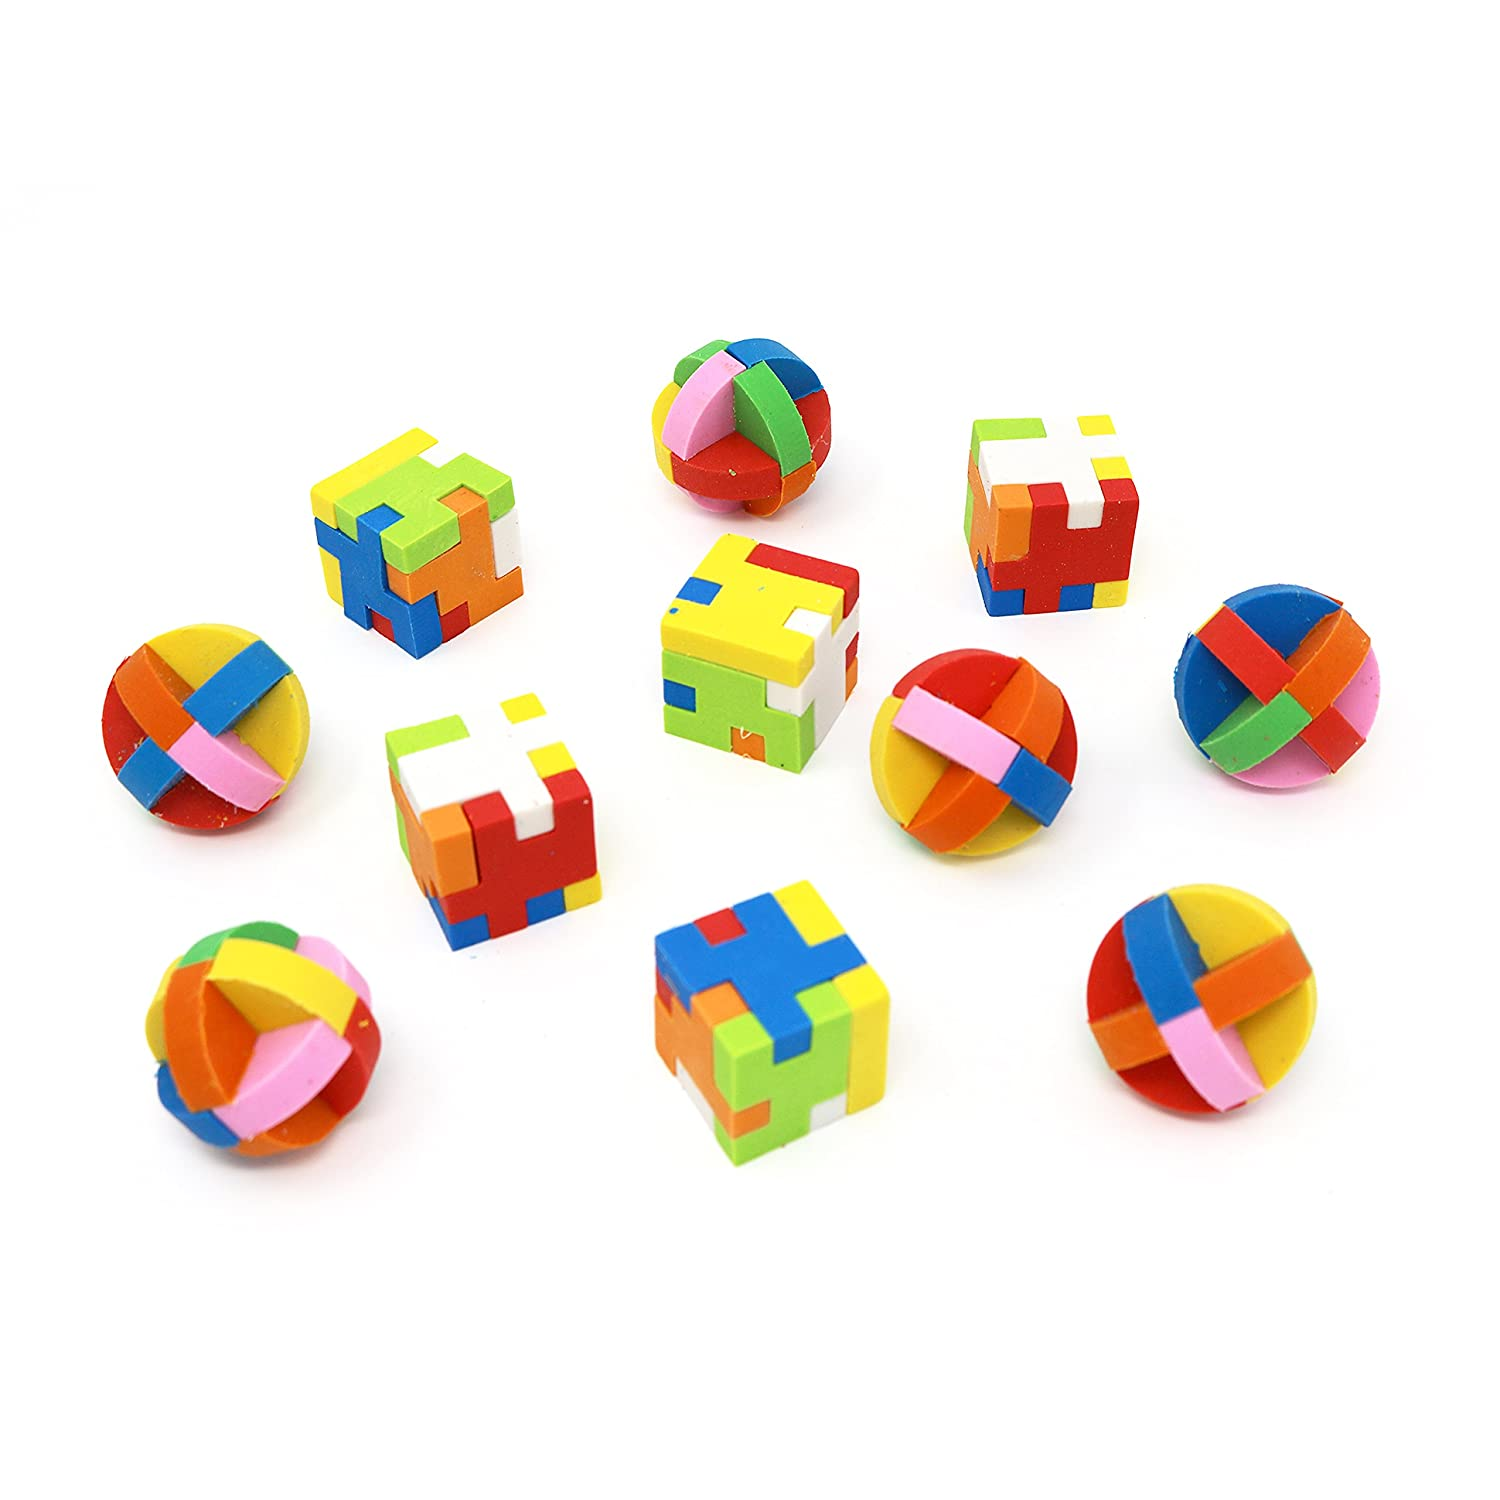 6 Balls and 6 Cubes Big Mo/'s Toys Individually Wrapped Goody Bag Party Favor and Stocking Stuffers Pencil Eraser Big Mos Toys Puzzle Erasers